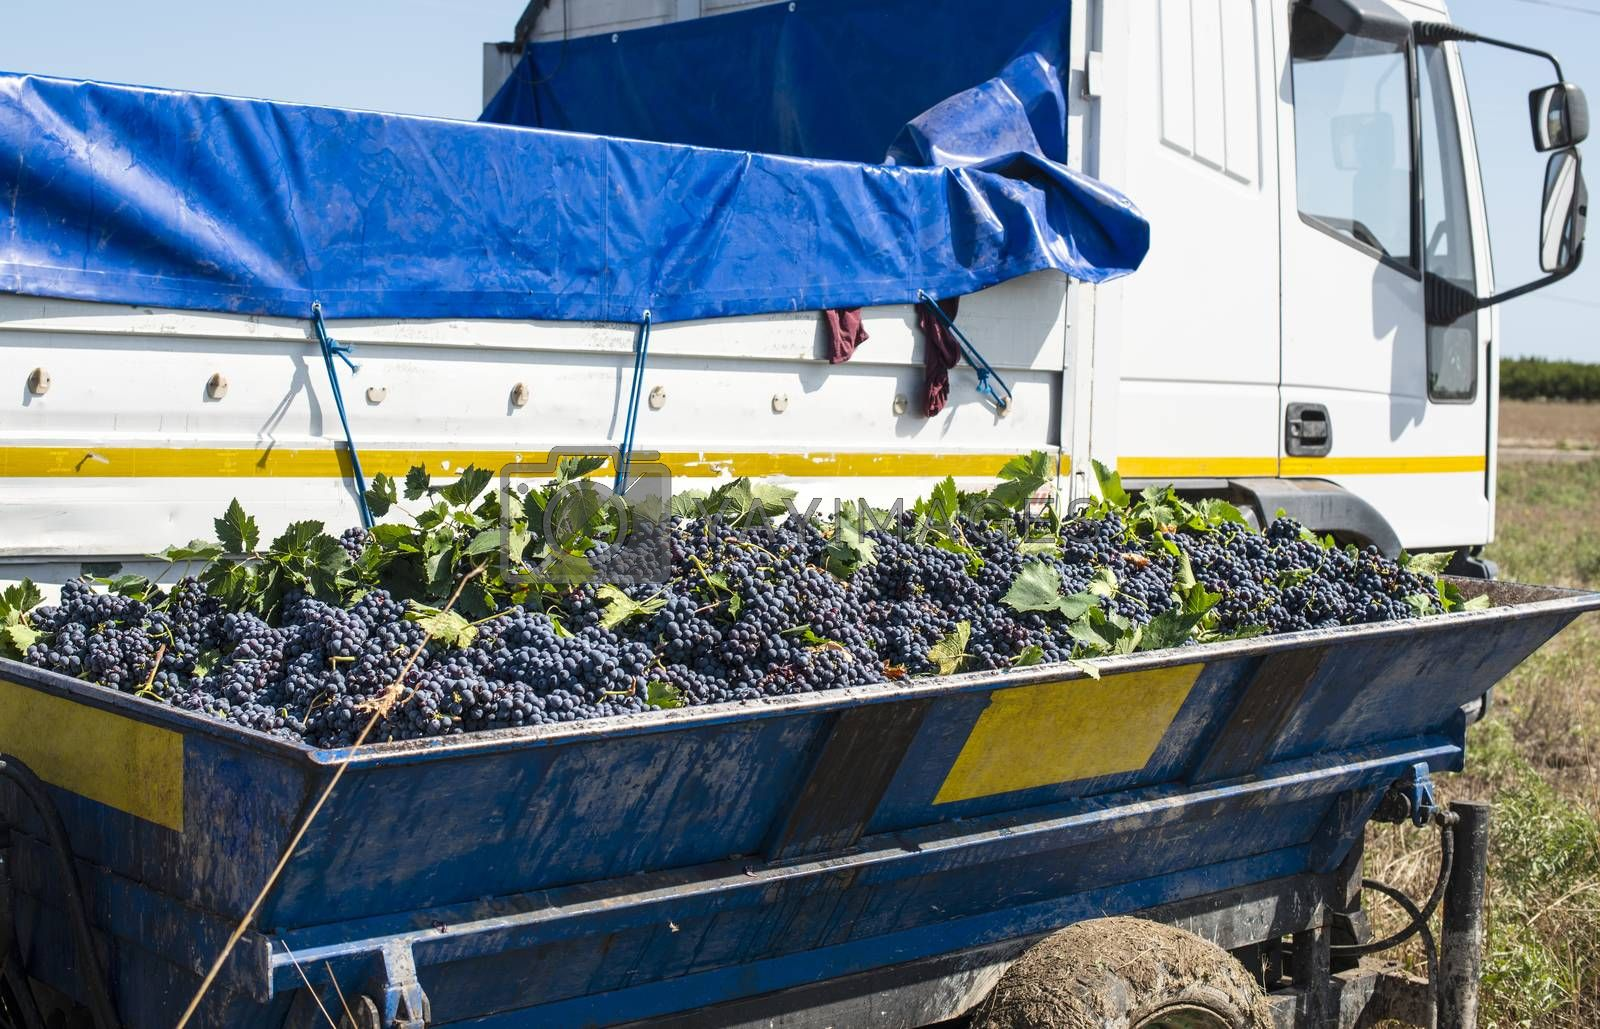 Truck with red grape for wine making. Pile of grape on truck trailer. Picking and transporting grape from vineyard. Wine making concept.